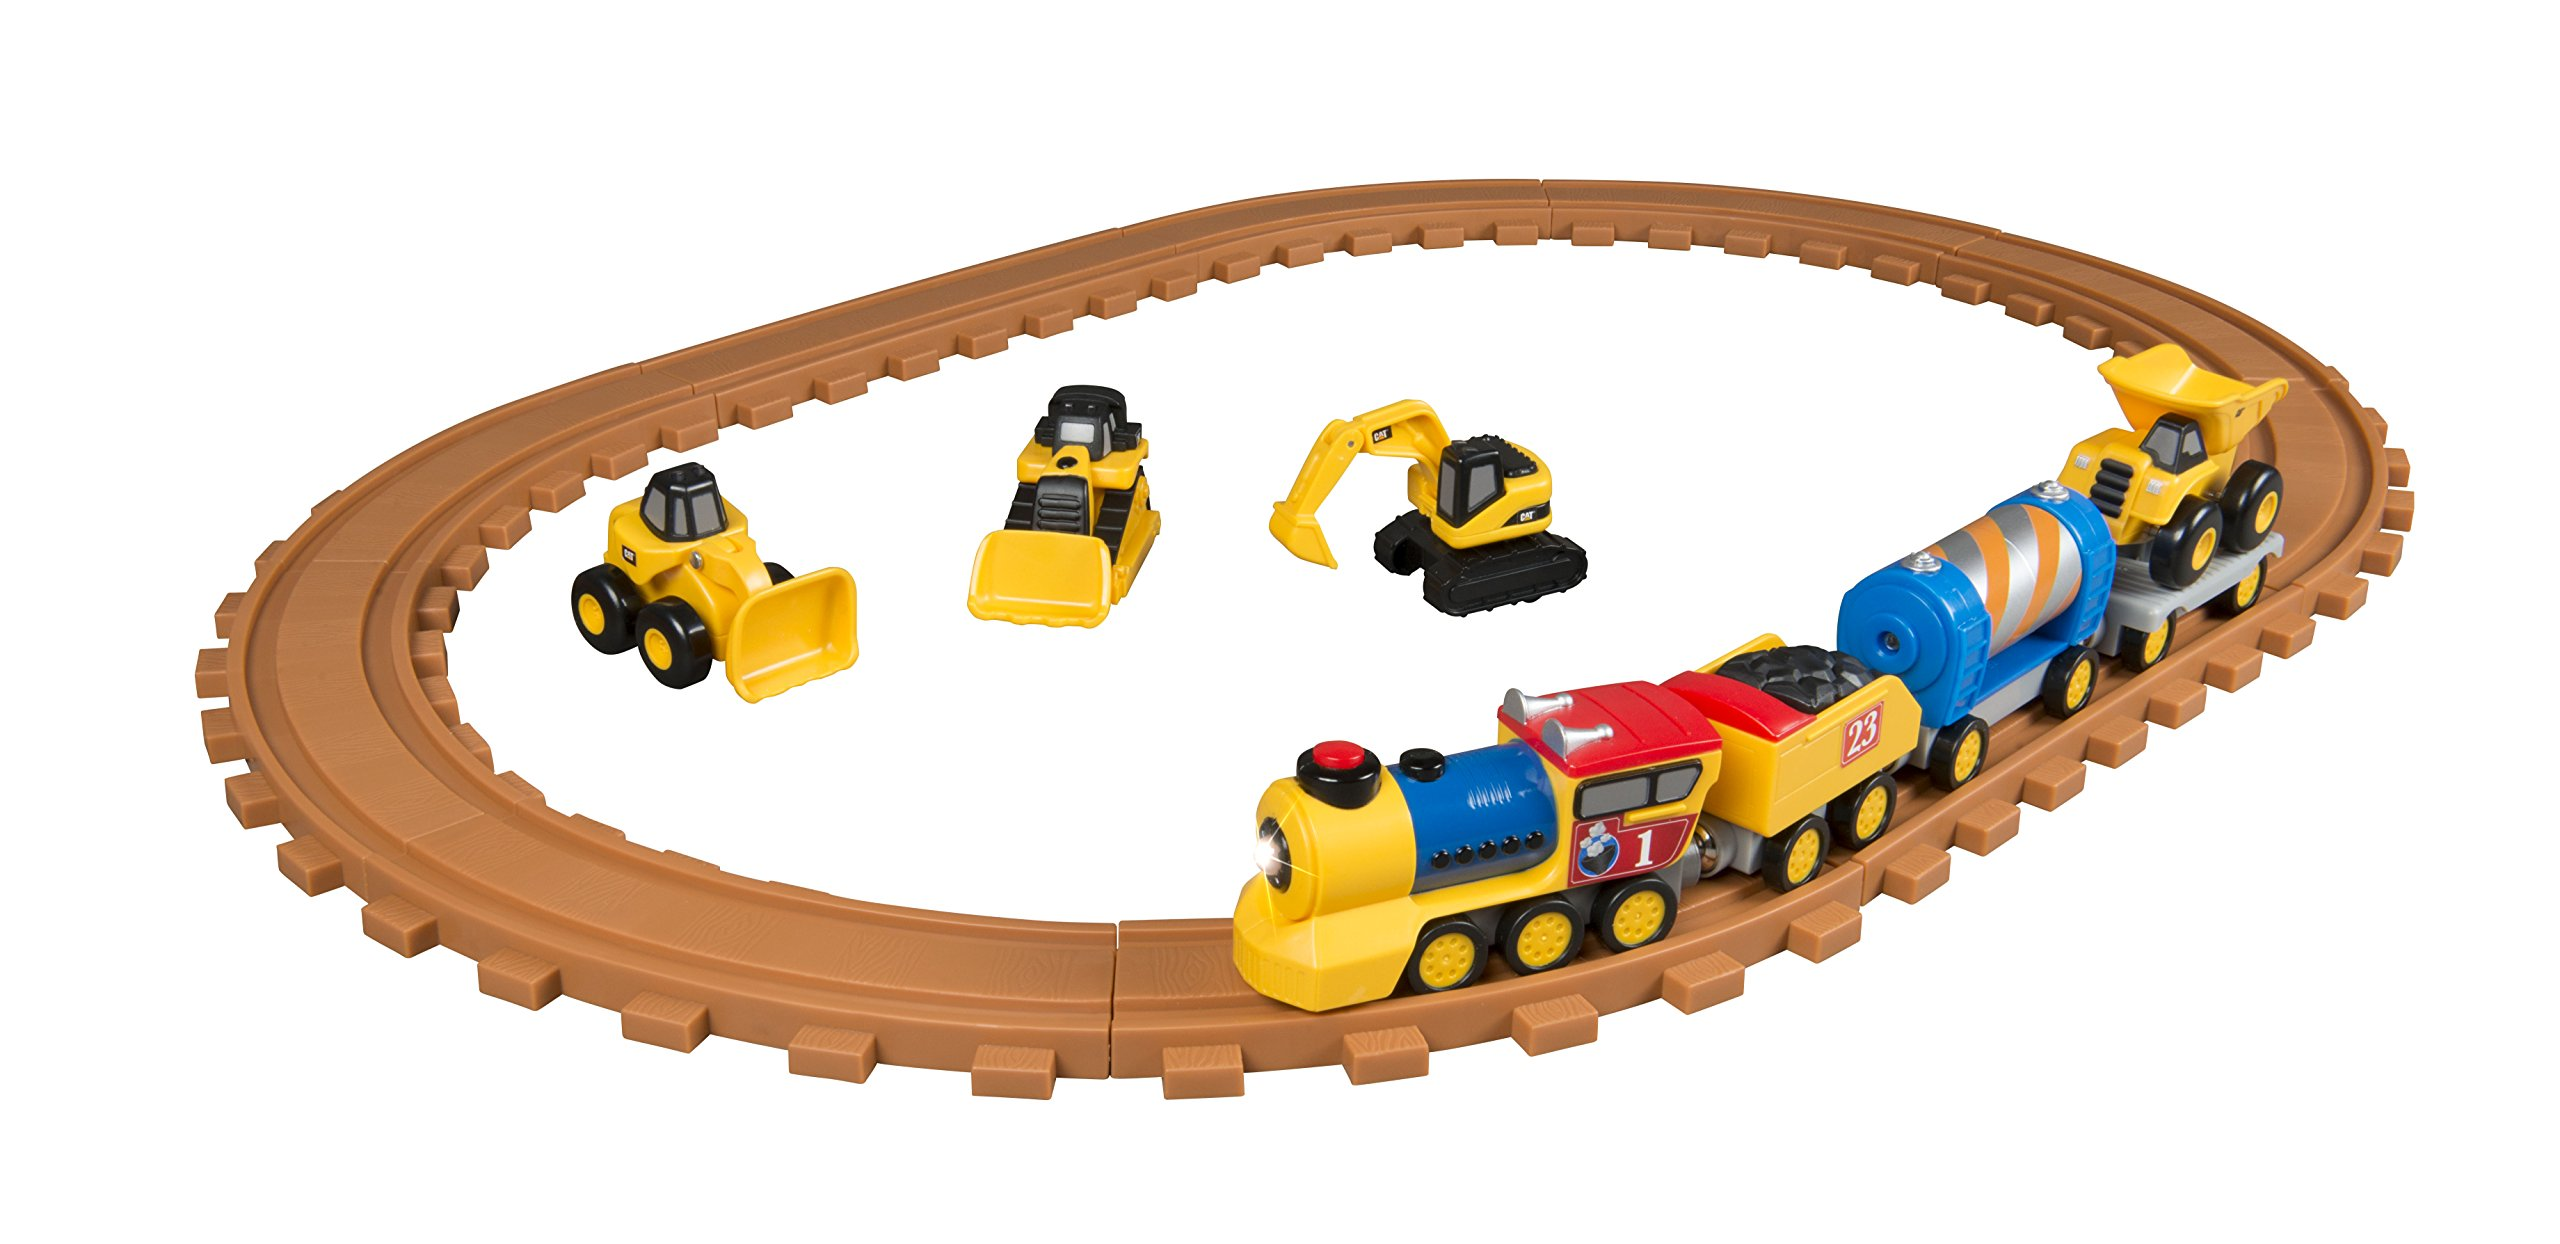 Toy State Caterpillar CAT Buildin' Crew Pre-School Express Train Light & Sound Vehicle